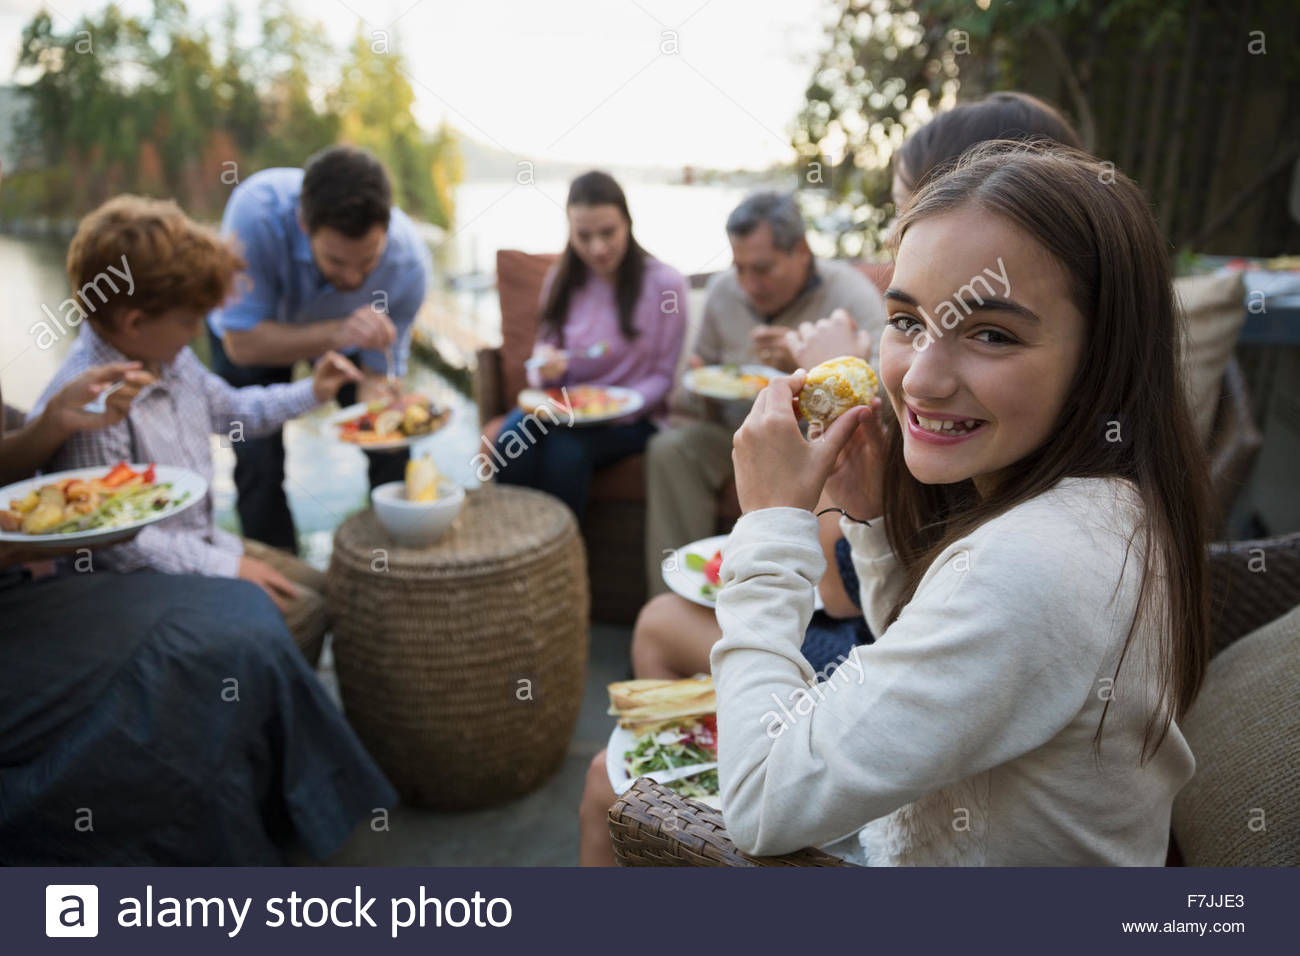 Portrait smiling girl eating with family on patio - Stock Image